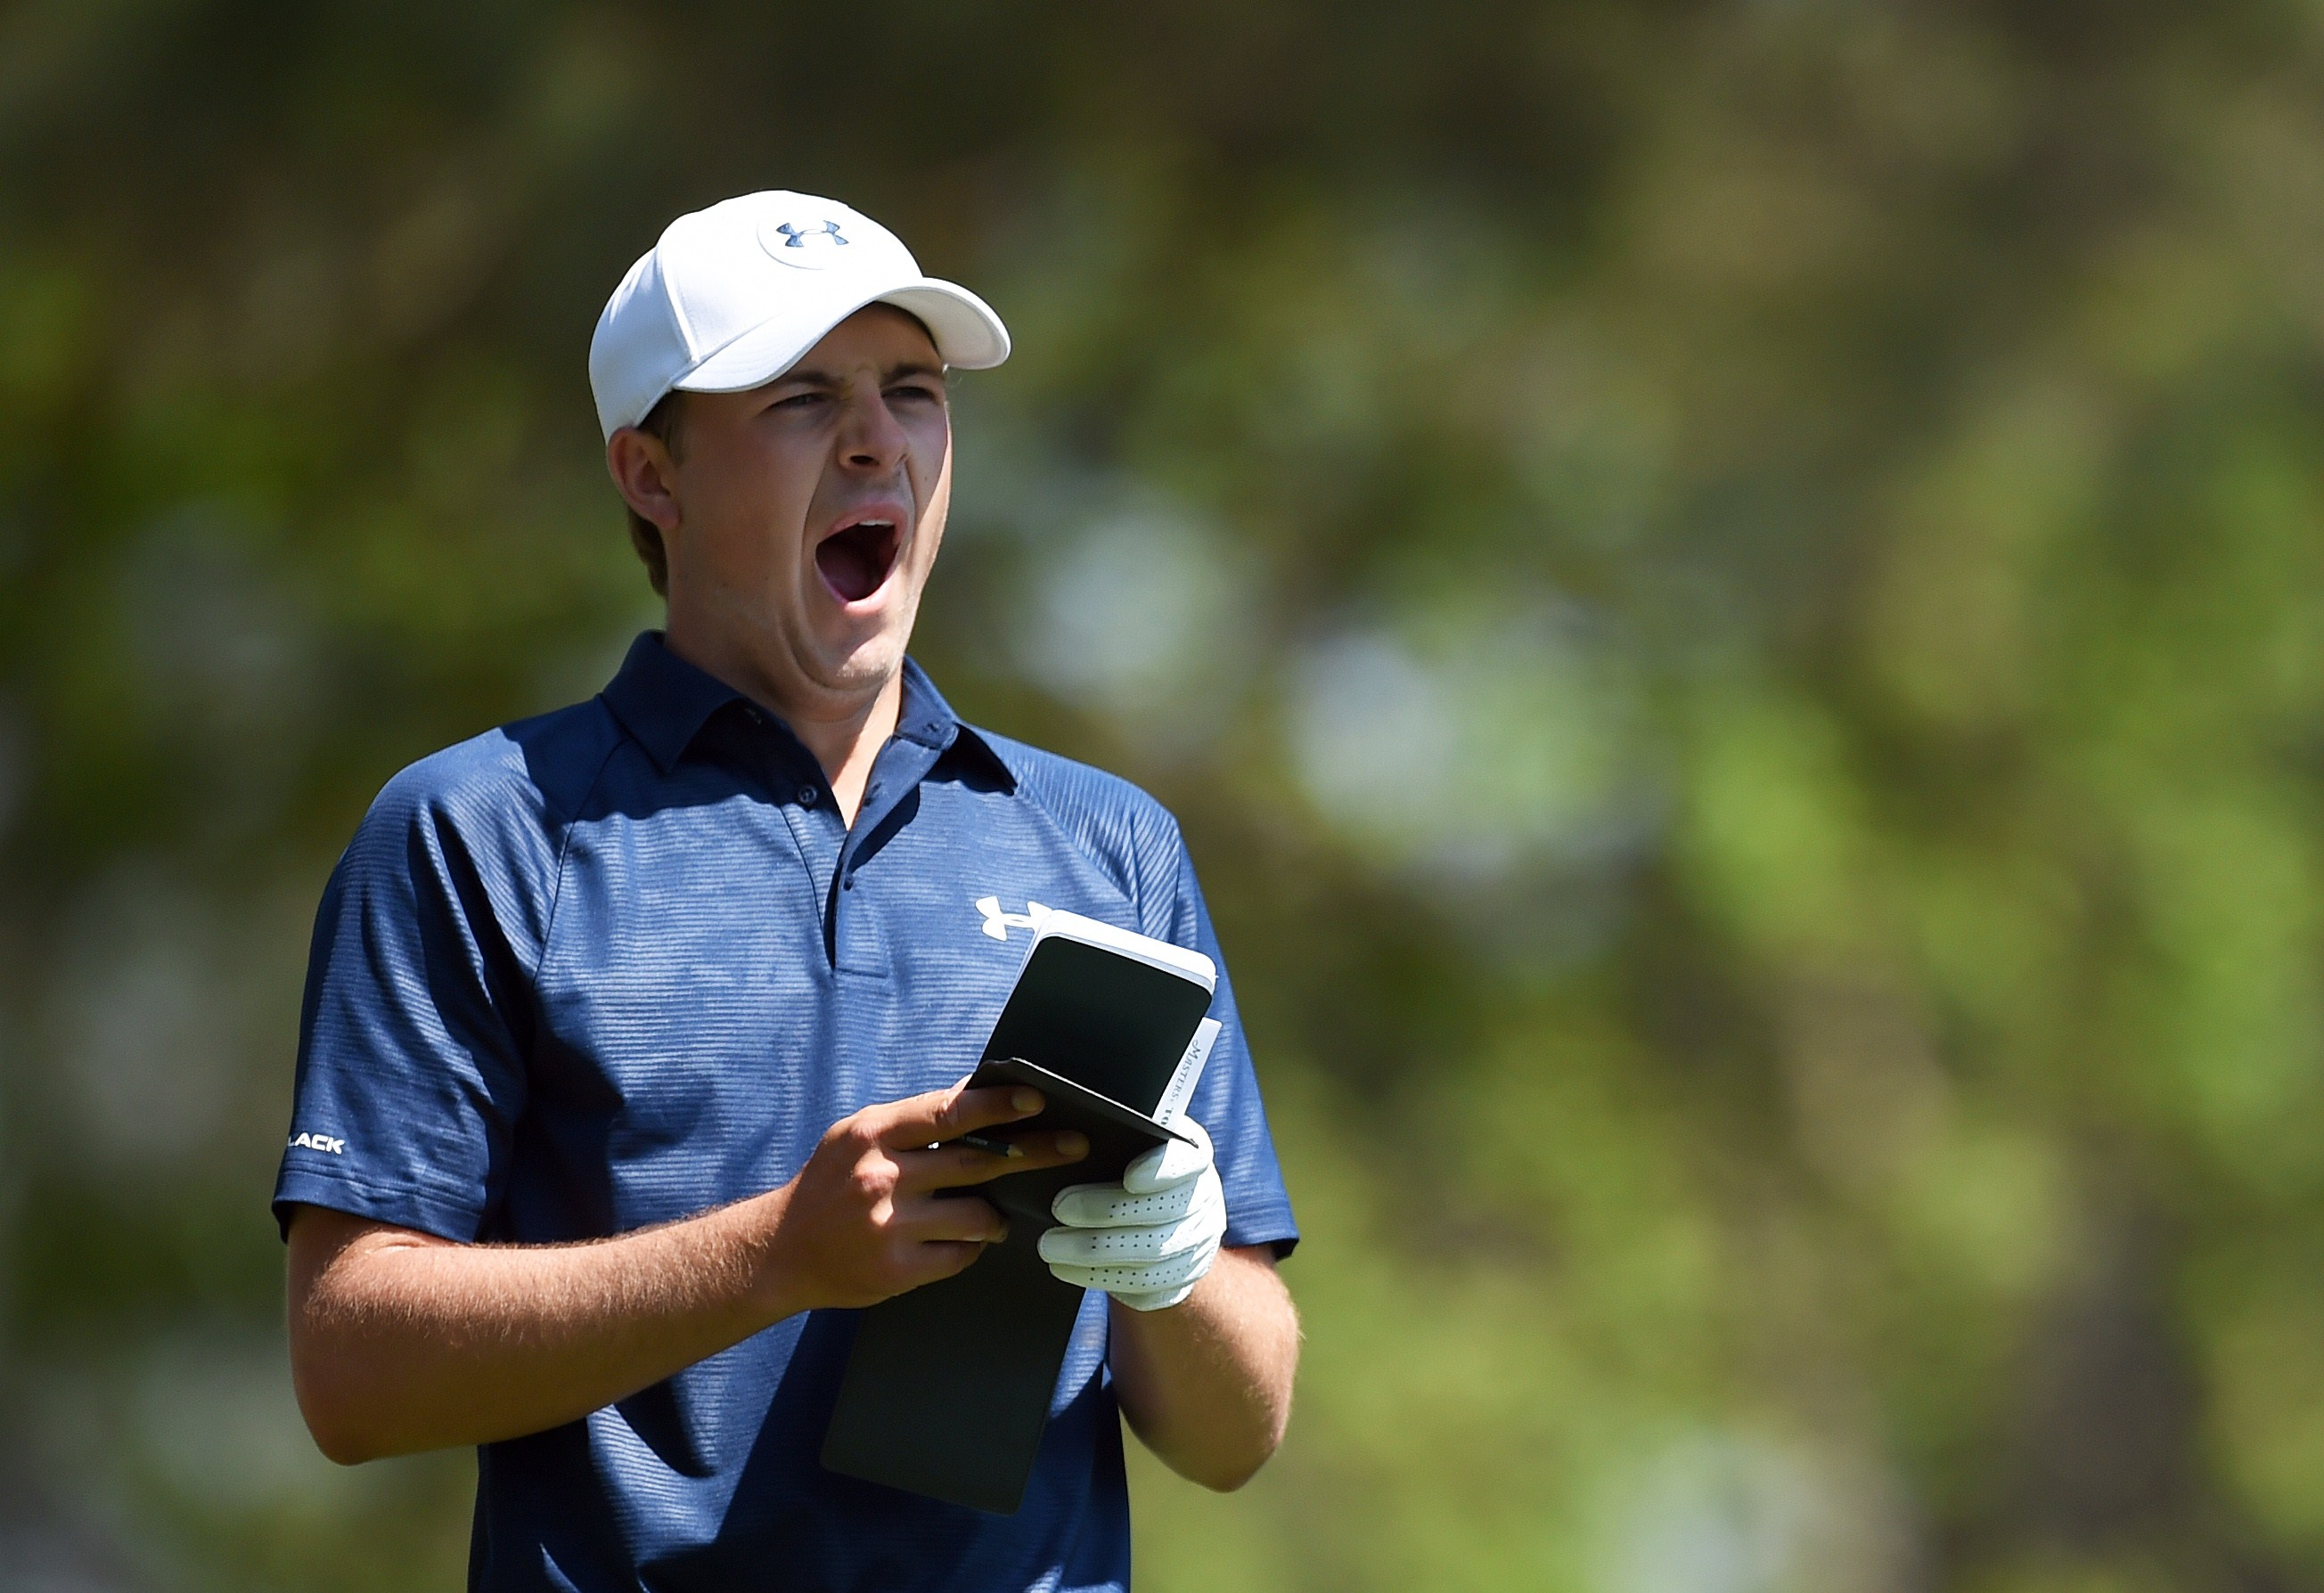 Golf voted Britain's most boring sport, according to YouGov survey